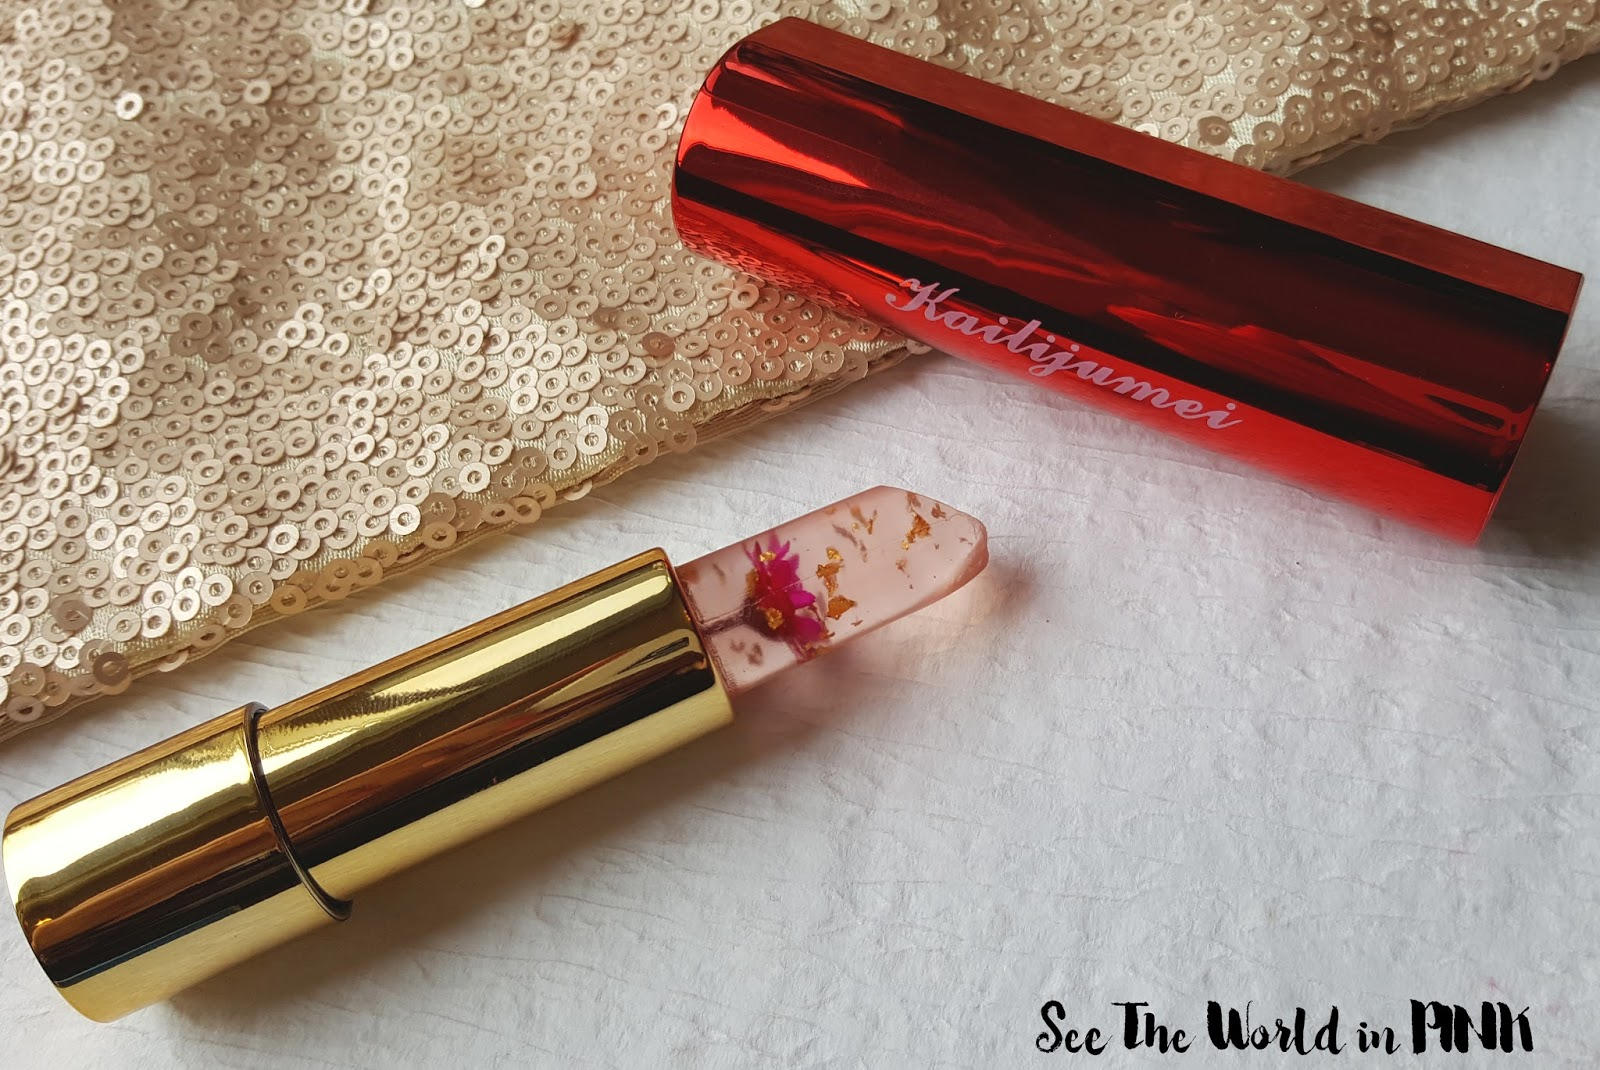 Kailijumei Flower Lipstick in Flame Red - Try on and Review!